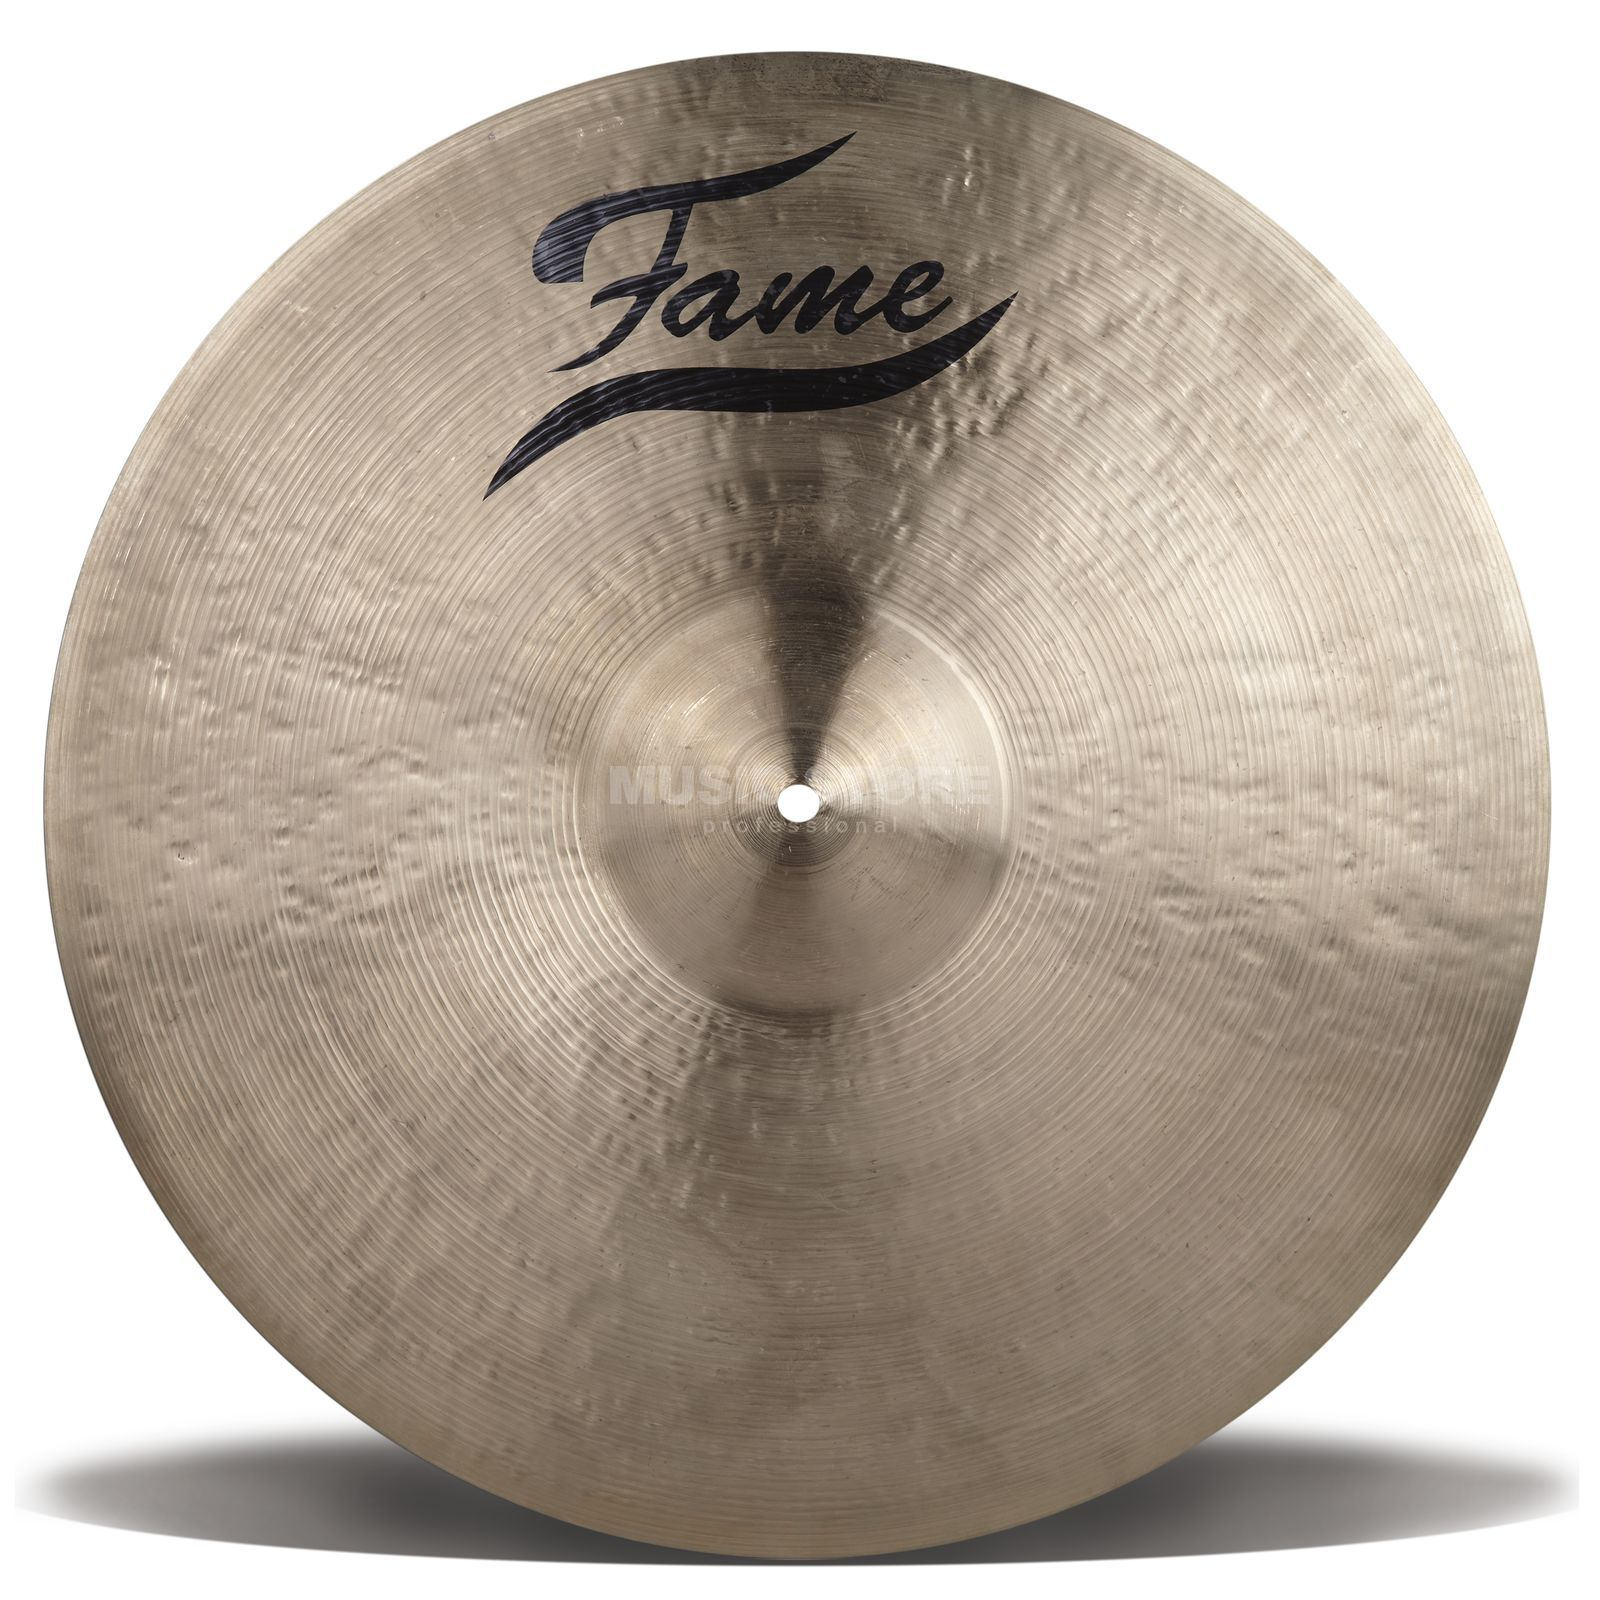 "Fame Masters B20 Heavy Ride 22"", Natural Finish Produktbild"